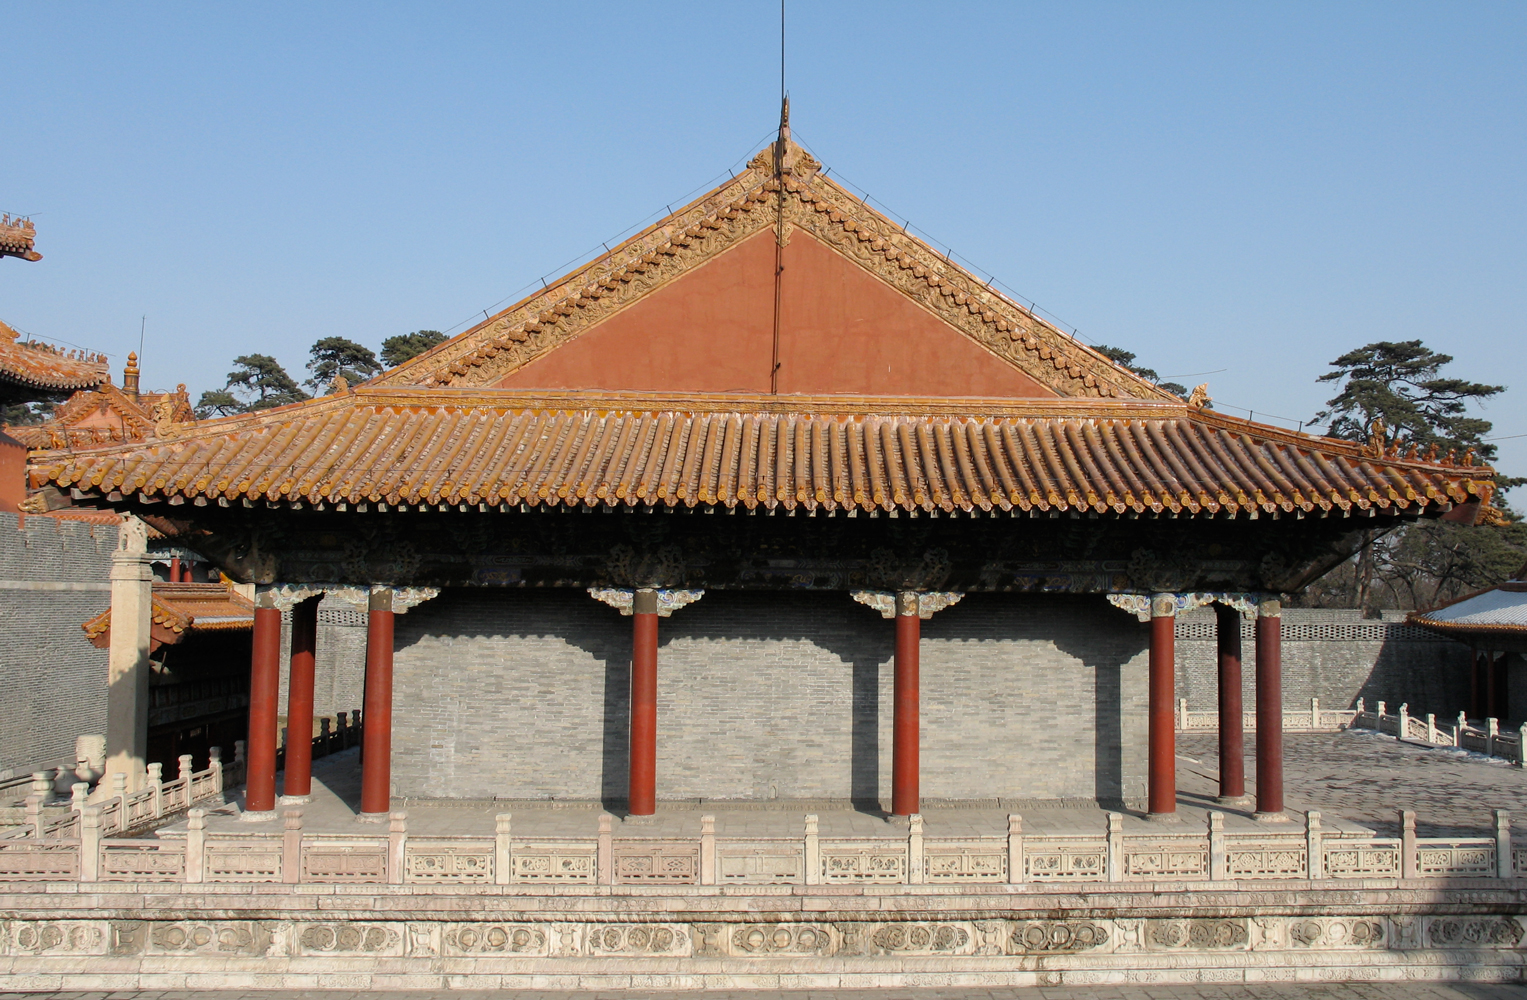 Richard Lund's China, Shenyang Imperial Palace, Roughness in Chinese architecture,